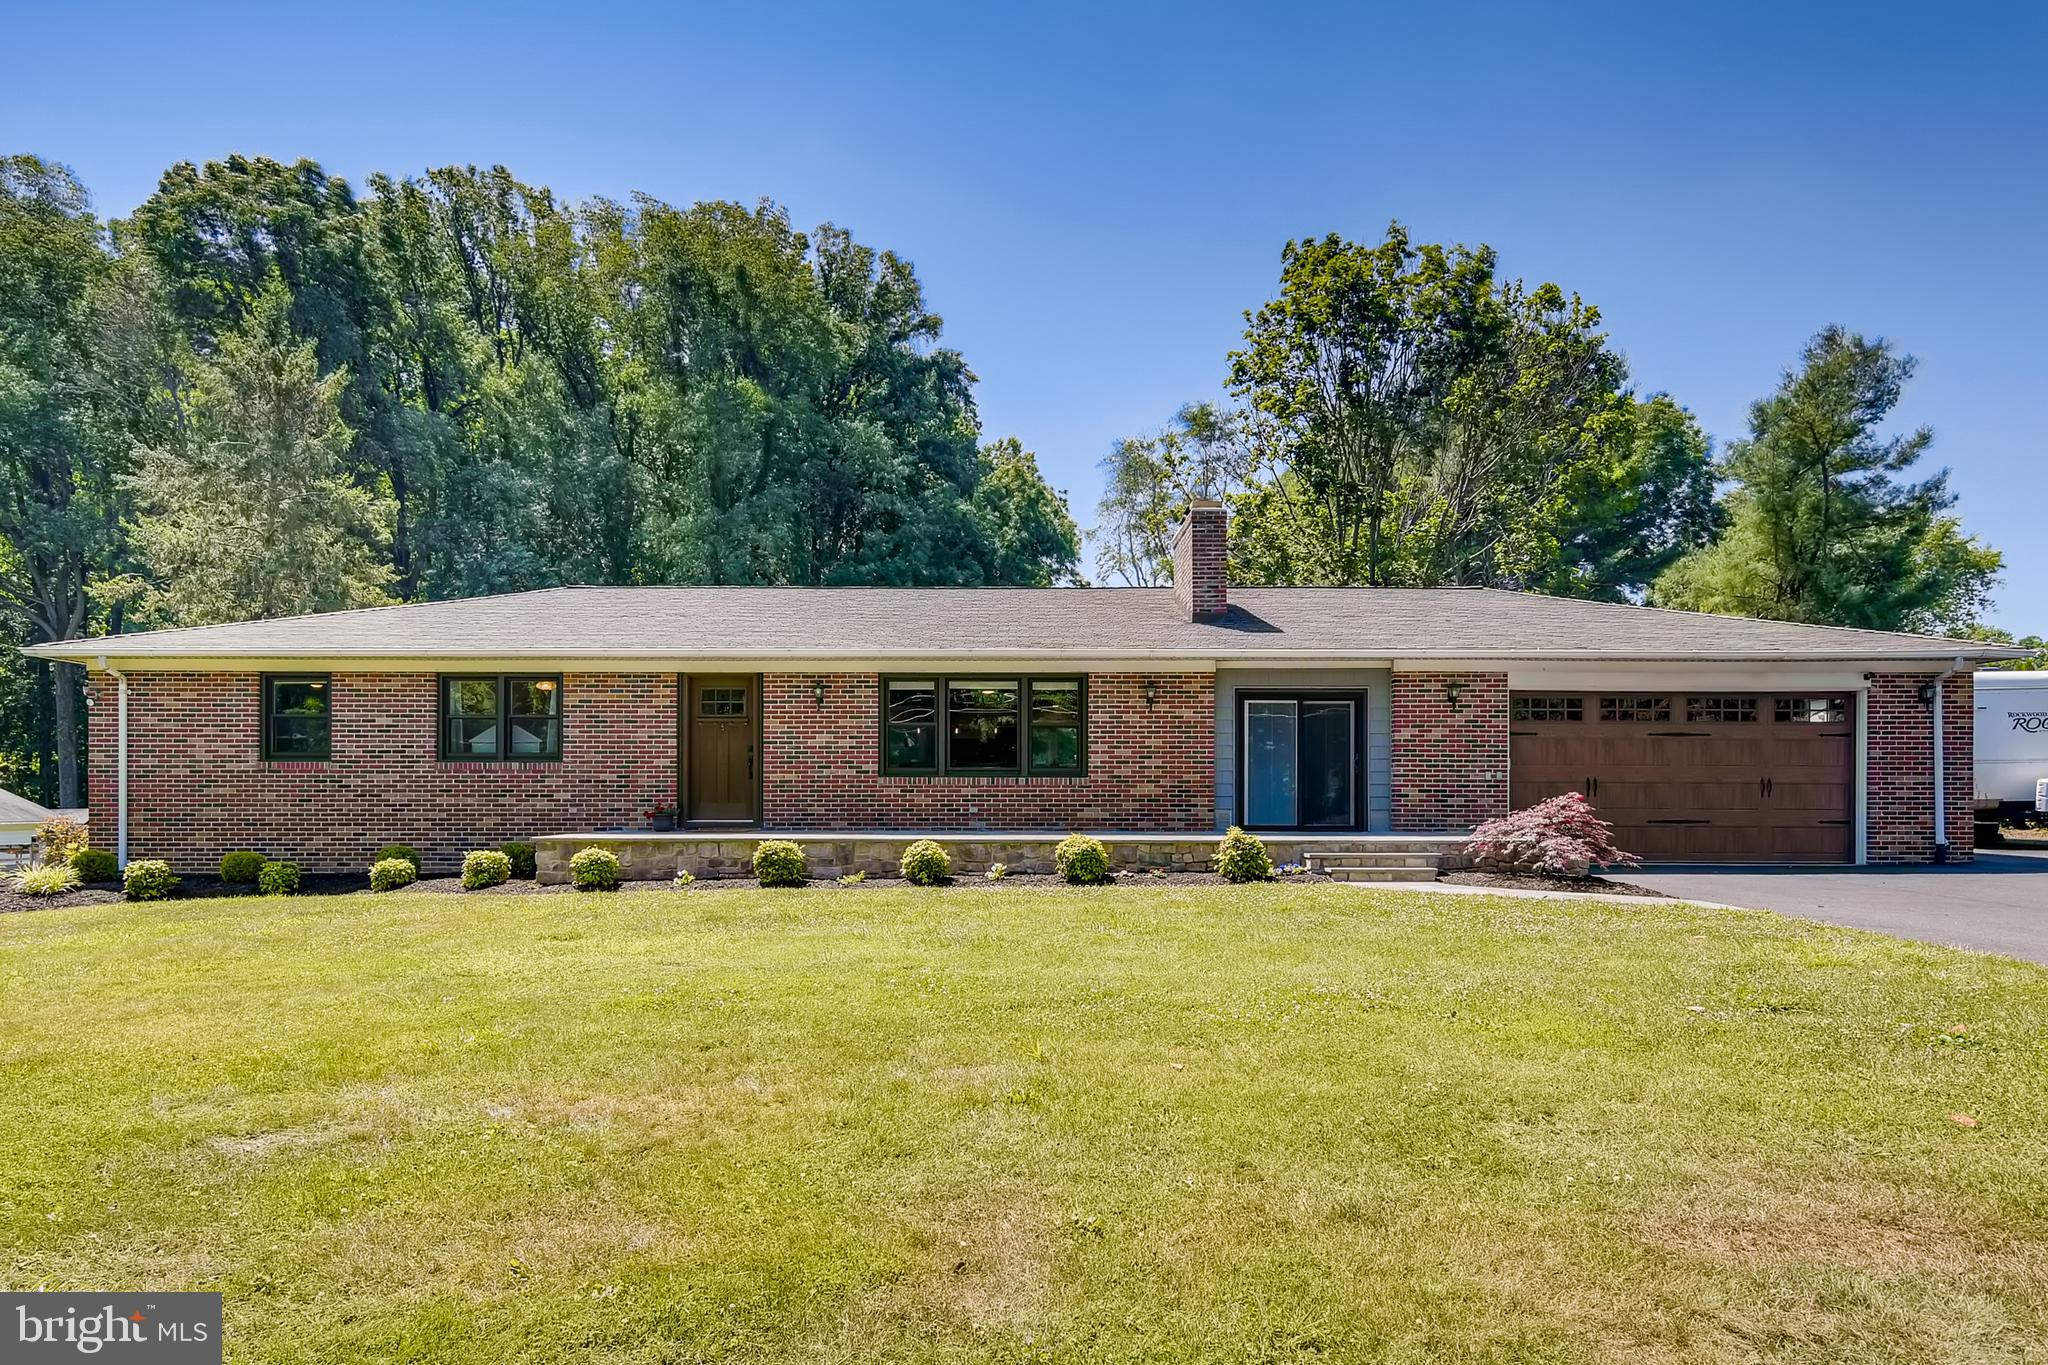 PRISTINE & REMODELED TOP to BOTTOM! This Home is what PINTEREST Dreams are Made Of!  4 Bedroom, 2 Fu